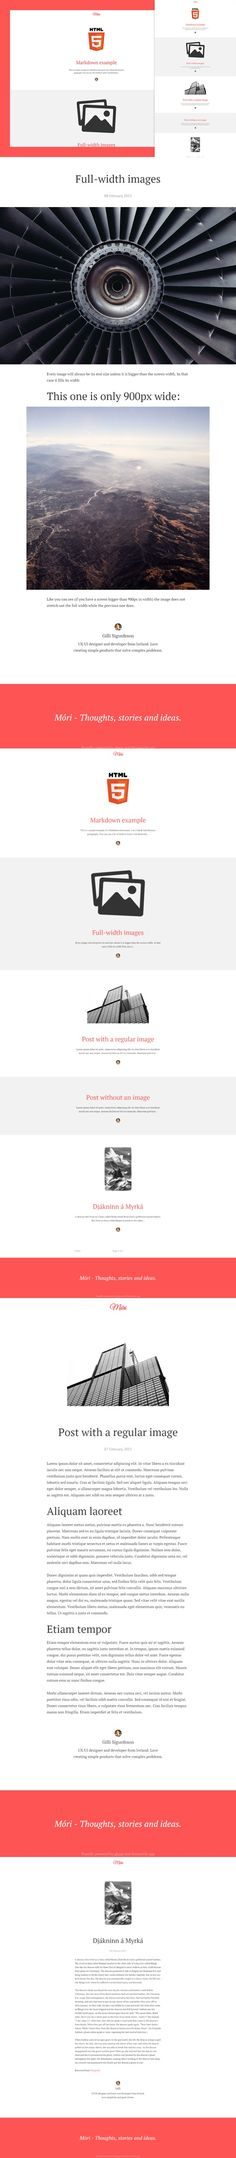 Móri - Clean and Responsive. Ghost Themes. $14.00